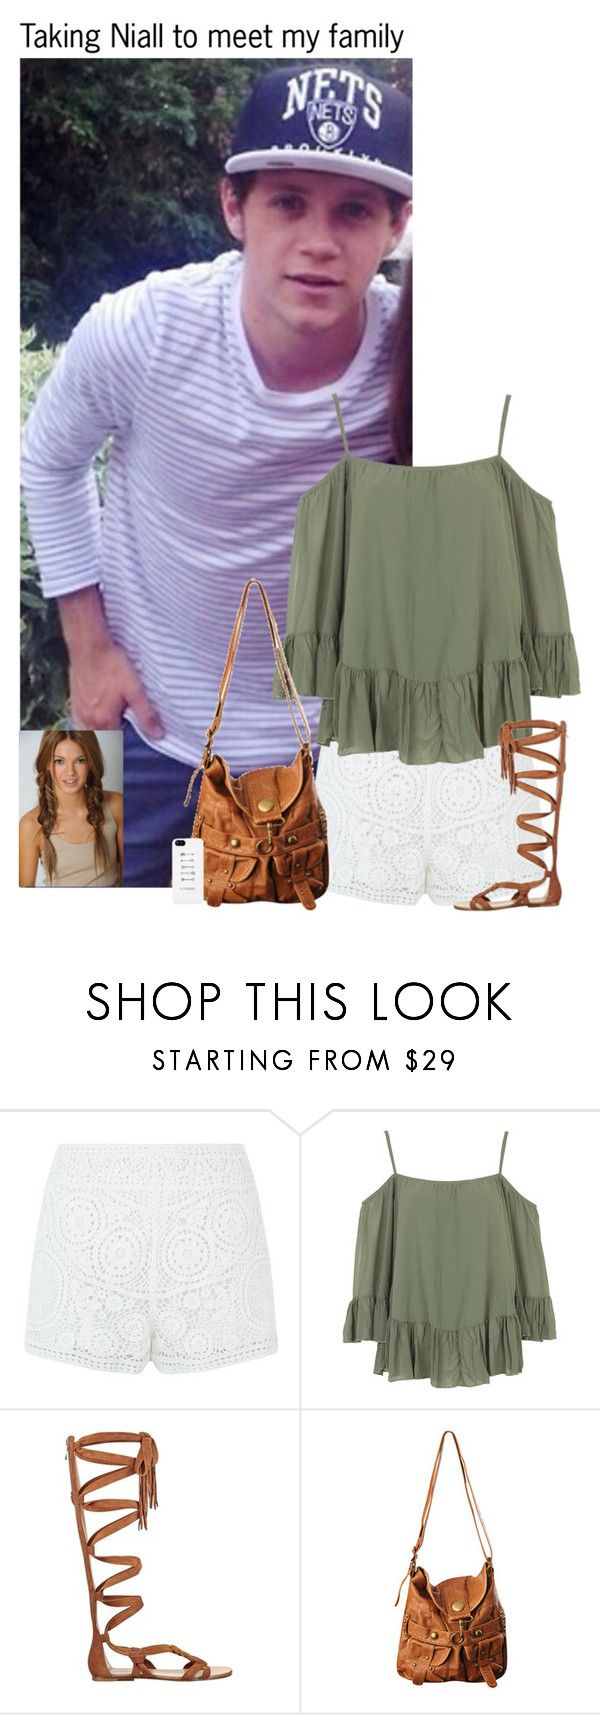 """Taking Niall to meet my family"" by kateremington-1 ❤ liked on Polyvore featuring Chloé, WalG, Sigerson Morrison and Forever 21"